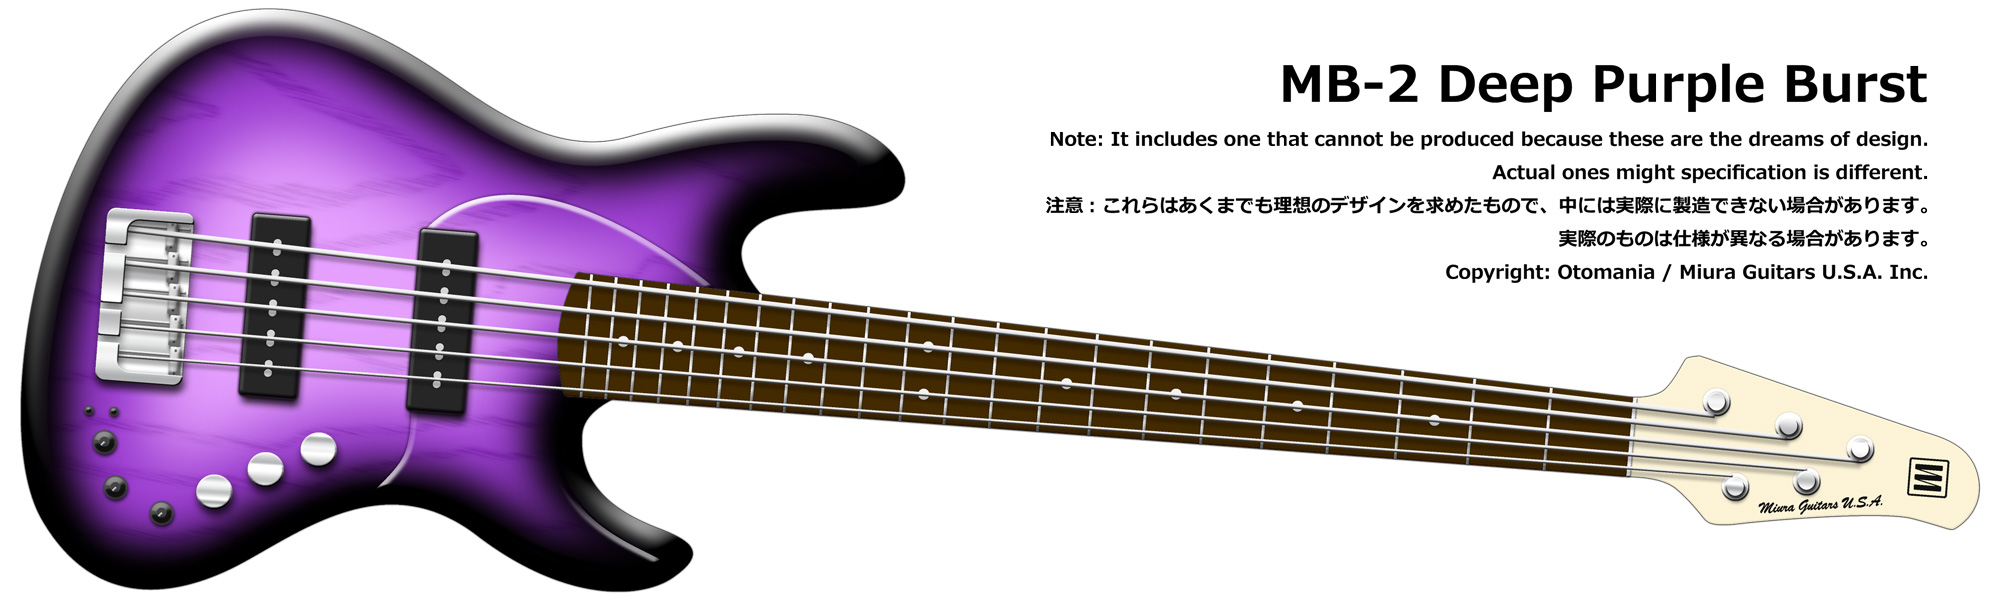 MB-2 Deep Purple Burst